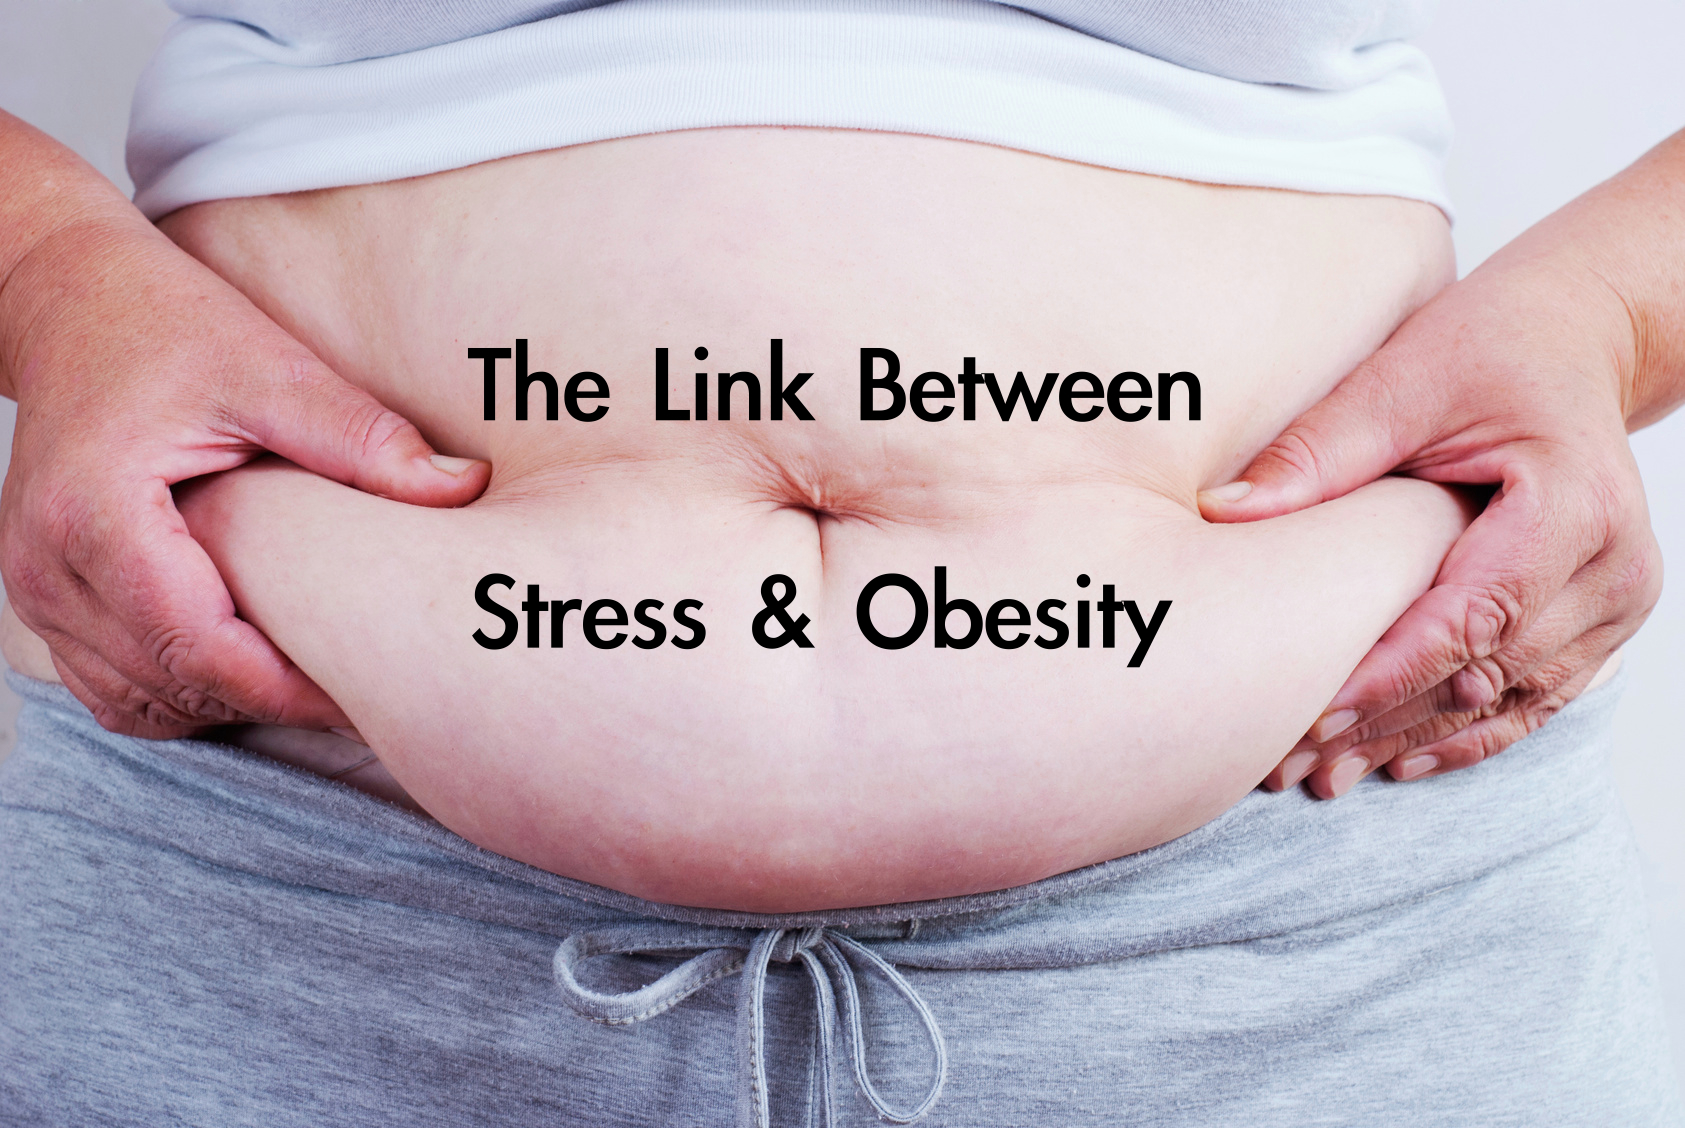 New Research Reinforces Connection Between Stress And Obesity